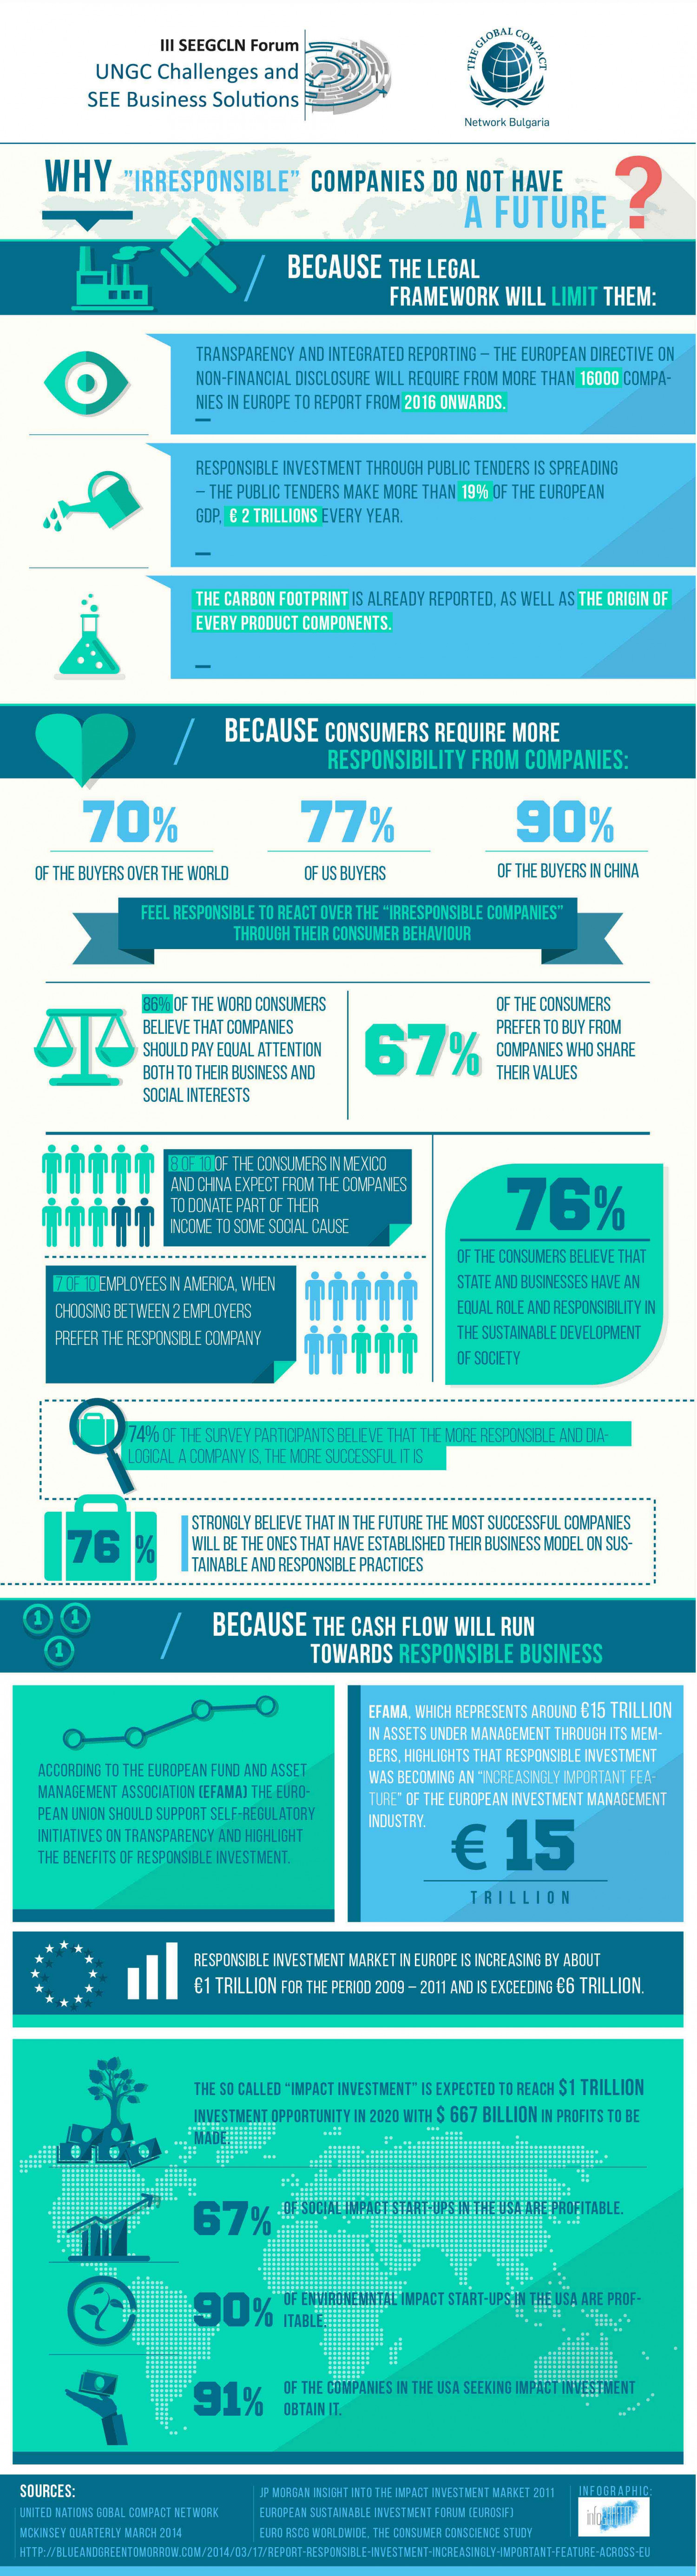 Why Irresponsible Companies do not Have a Future? Infographic